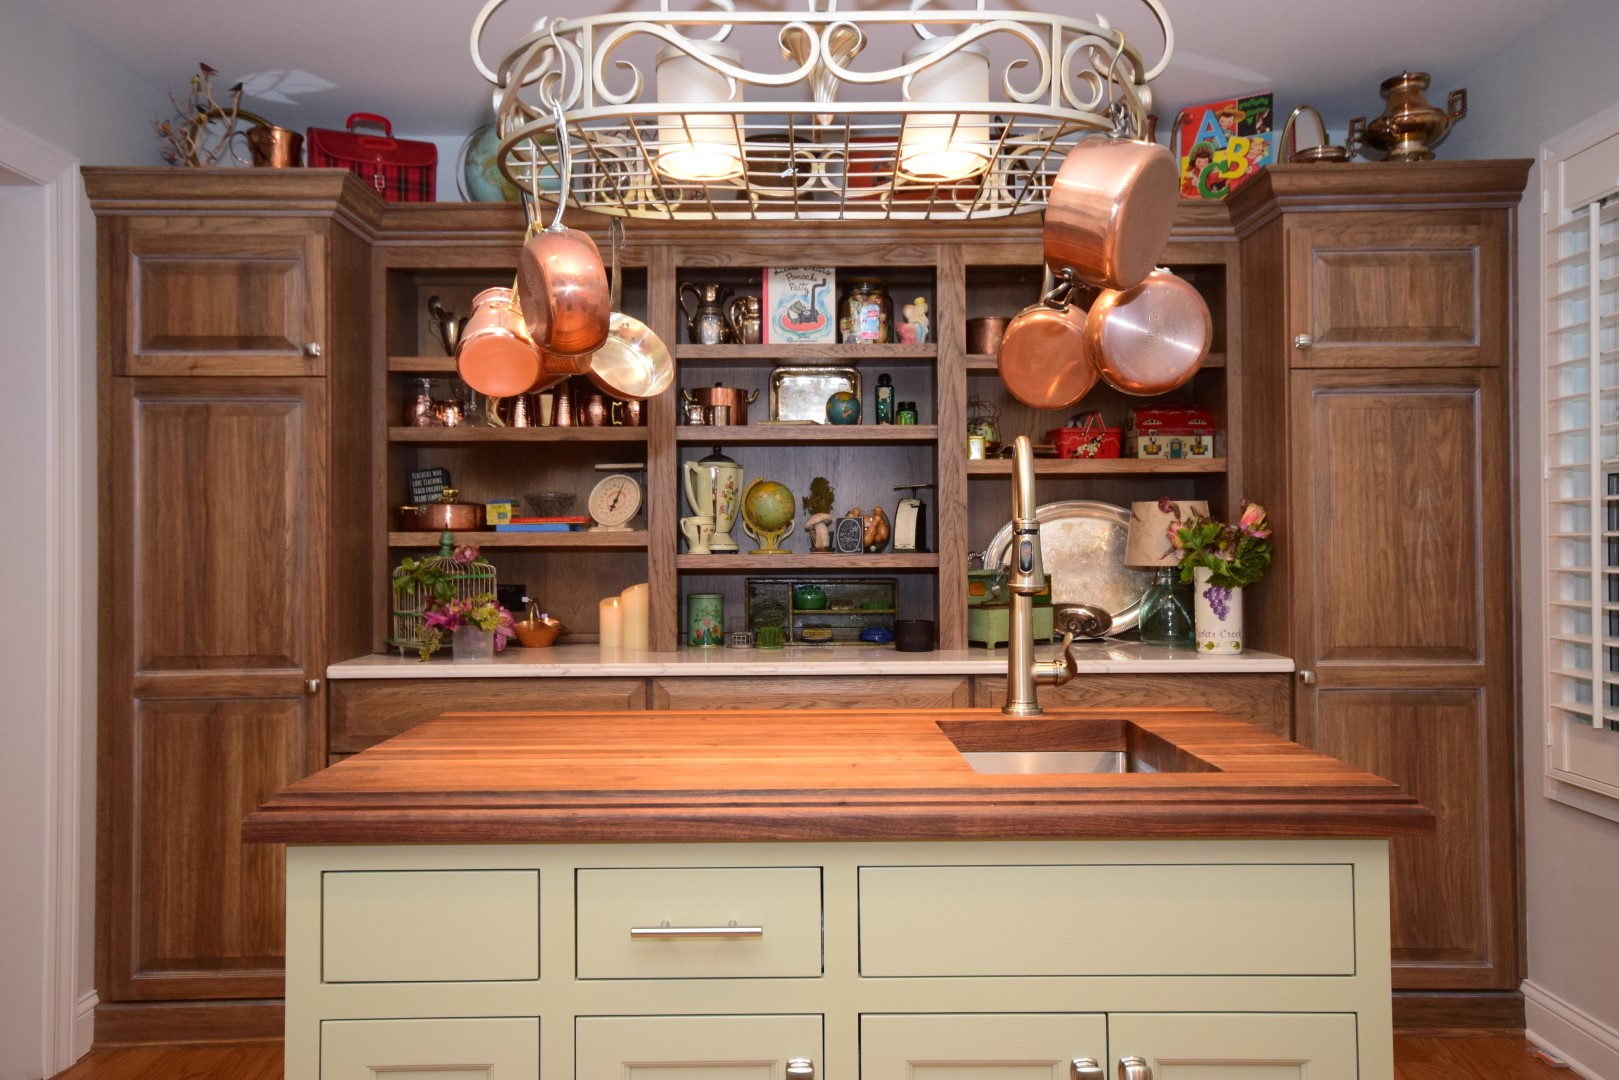 amish kitchen cabinets chicago round wooden table pictures archive custom kitchens